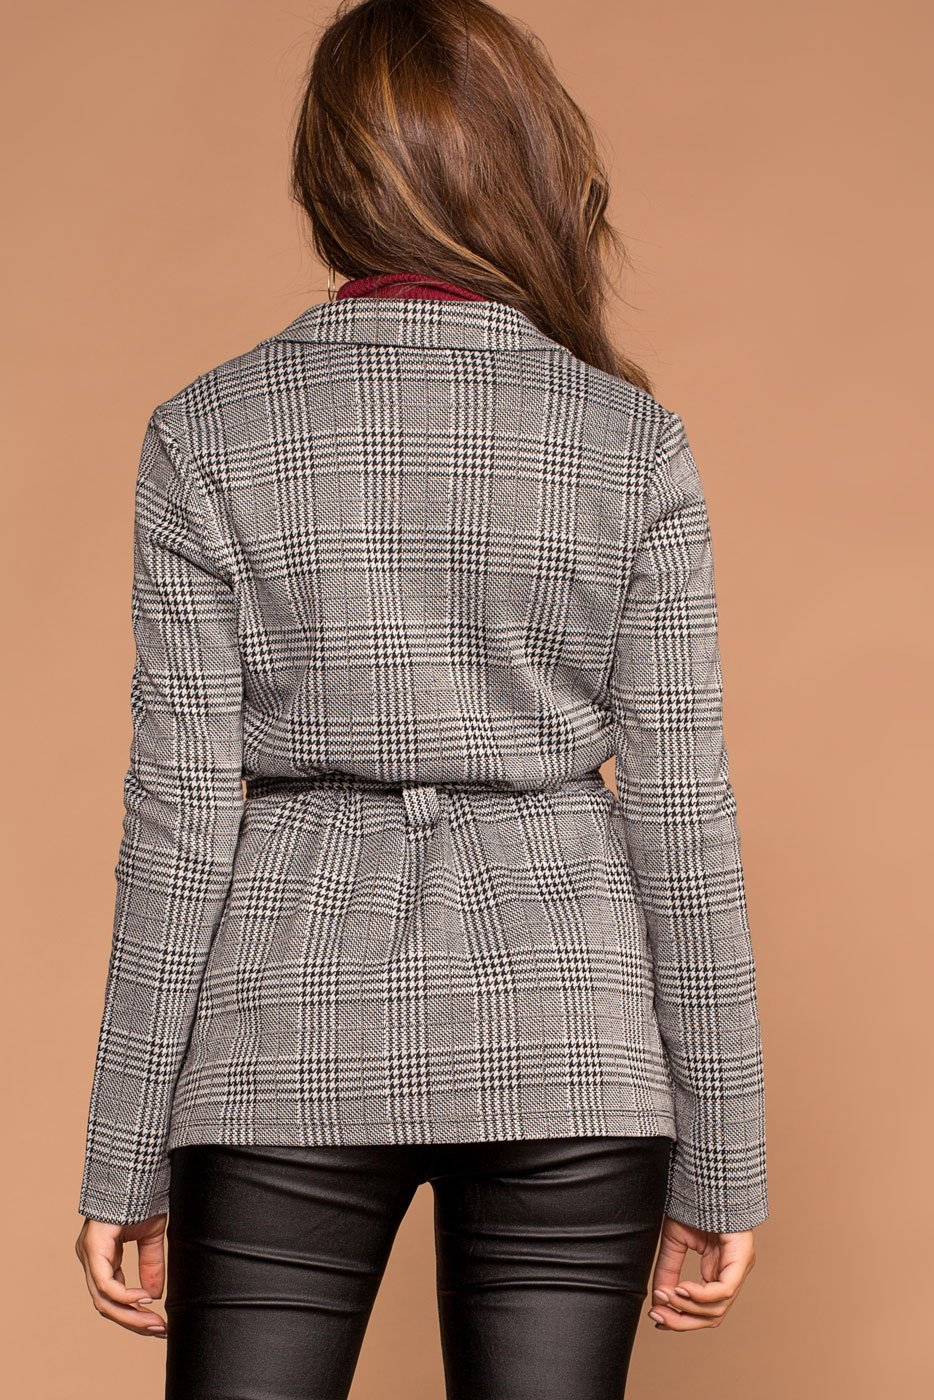 Jackets - Cynthia Plaid Self-Tie Jacket